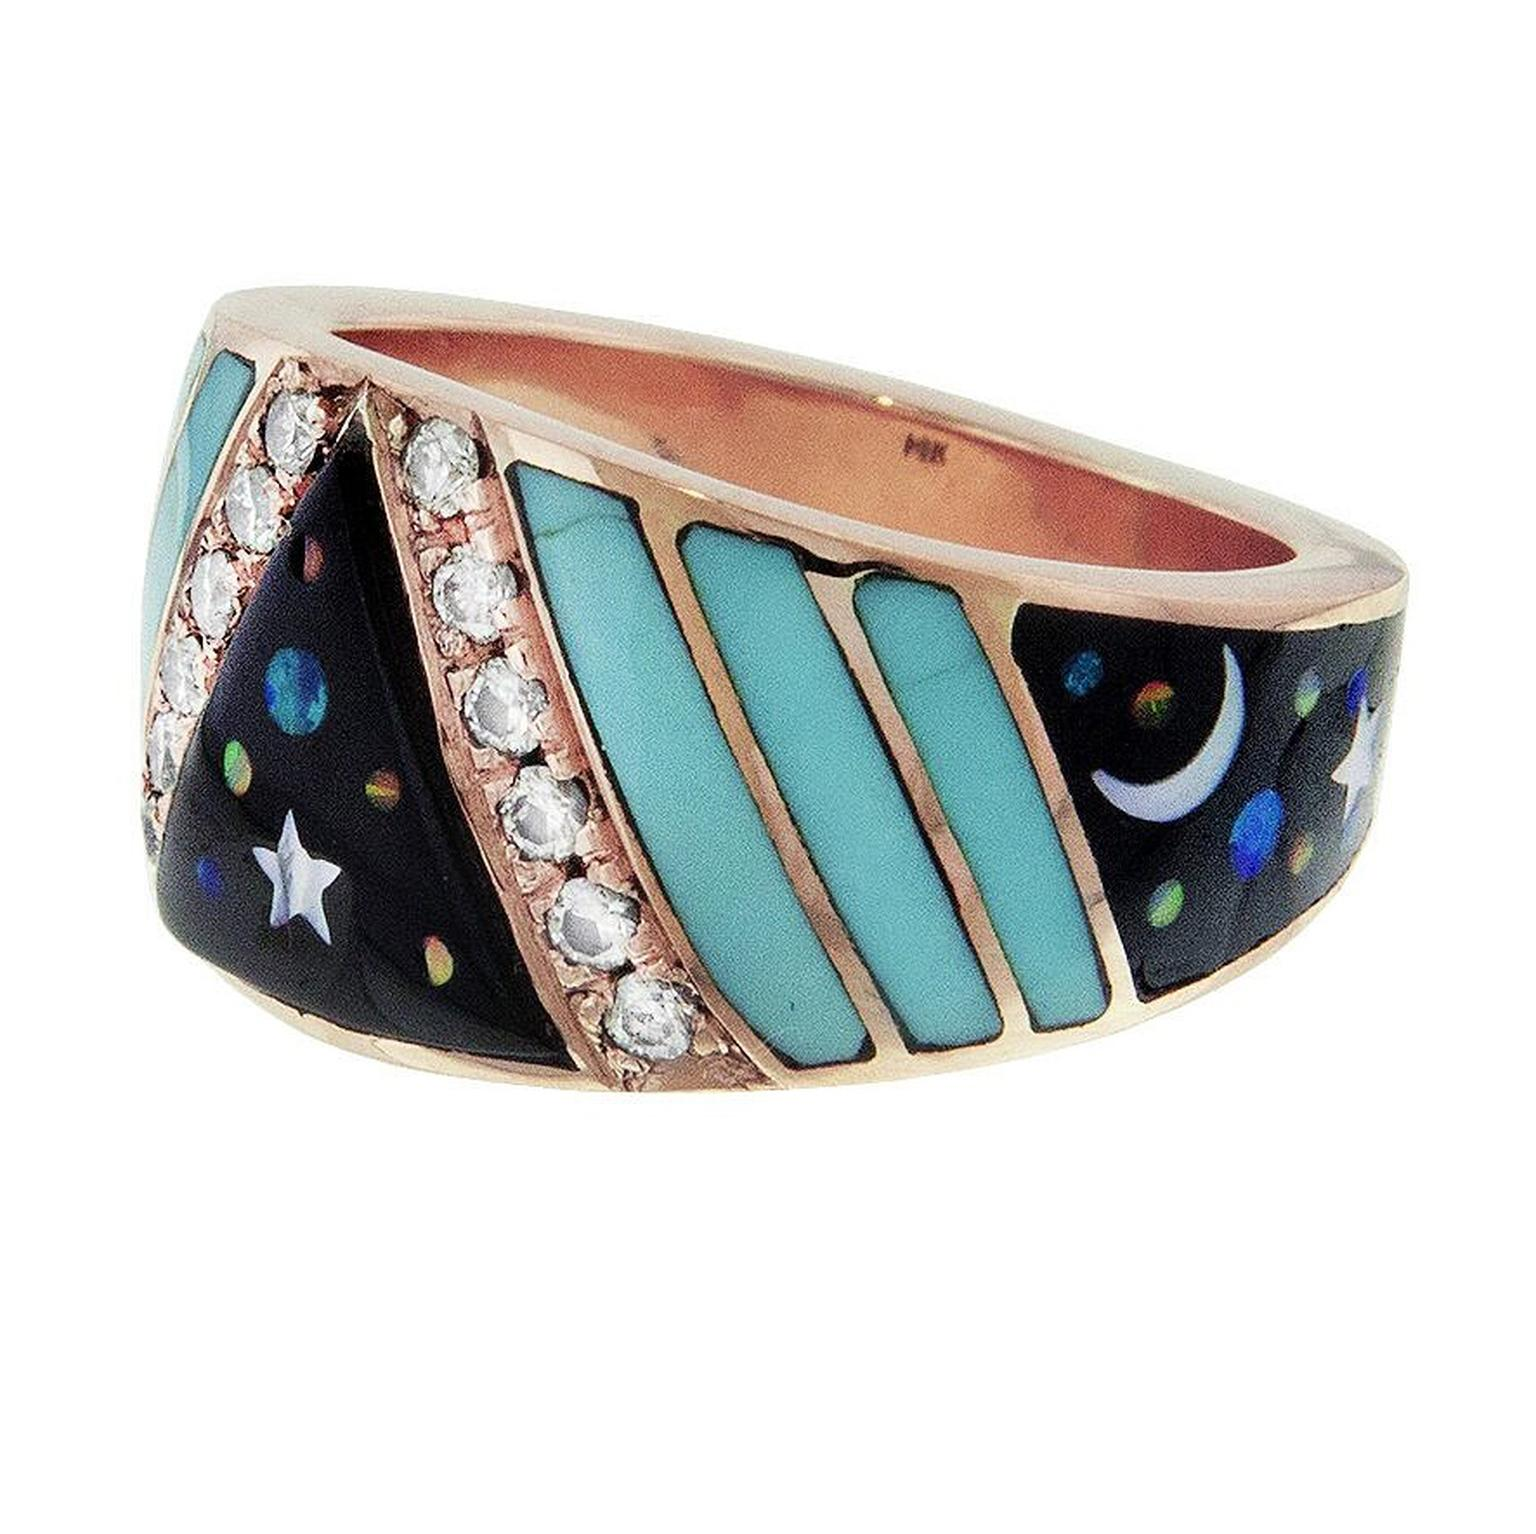 Galaxy opal ring by Jacquie Aiche